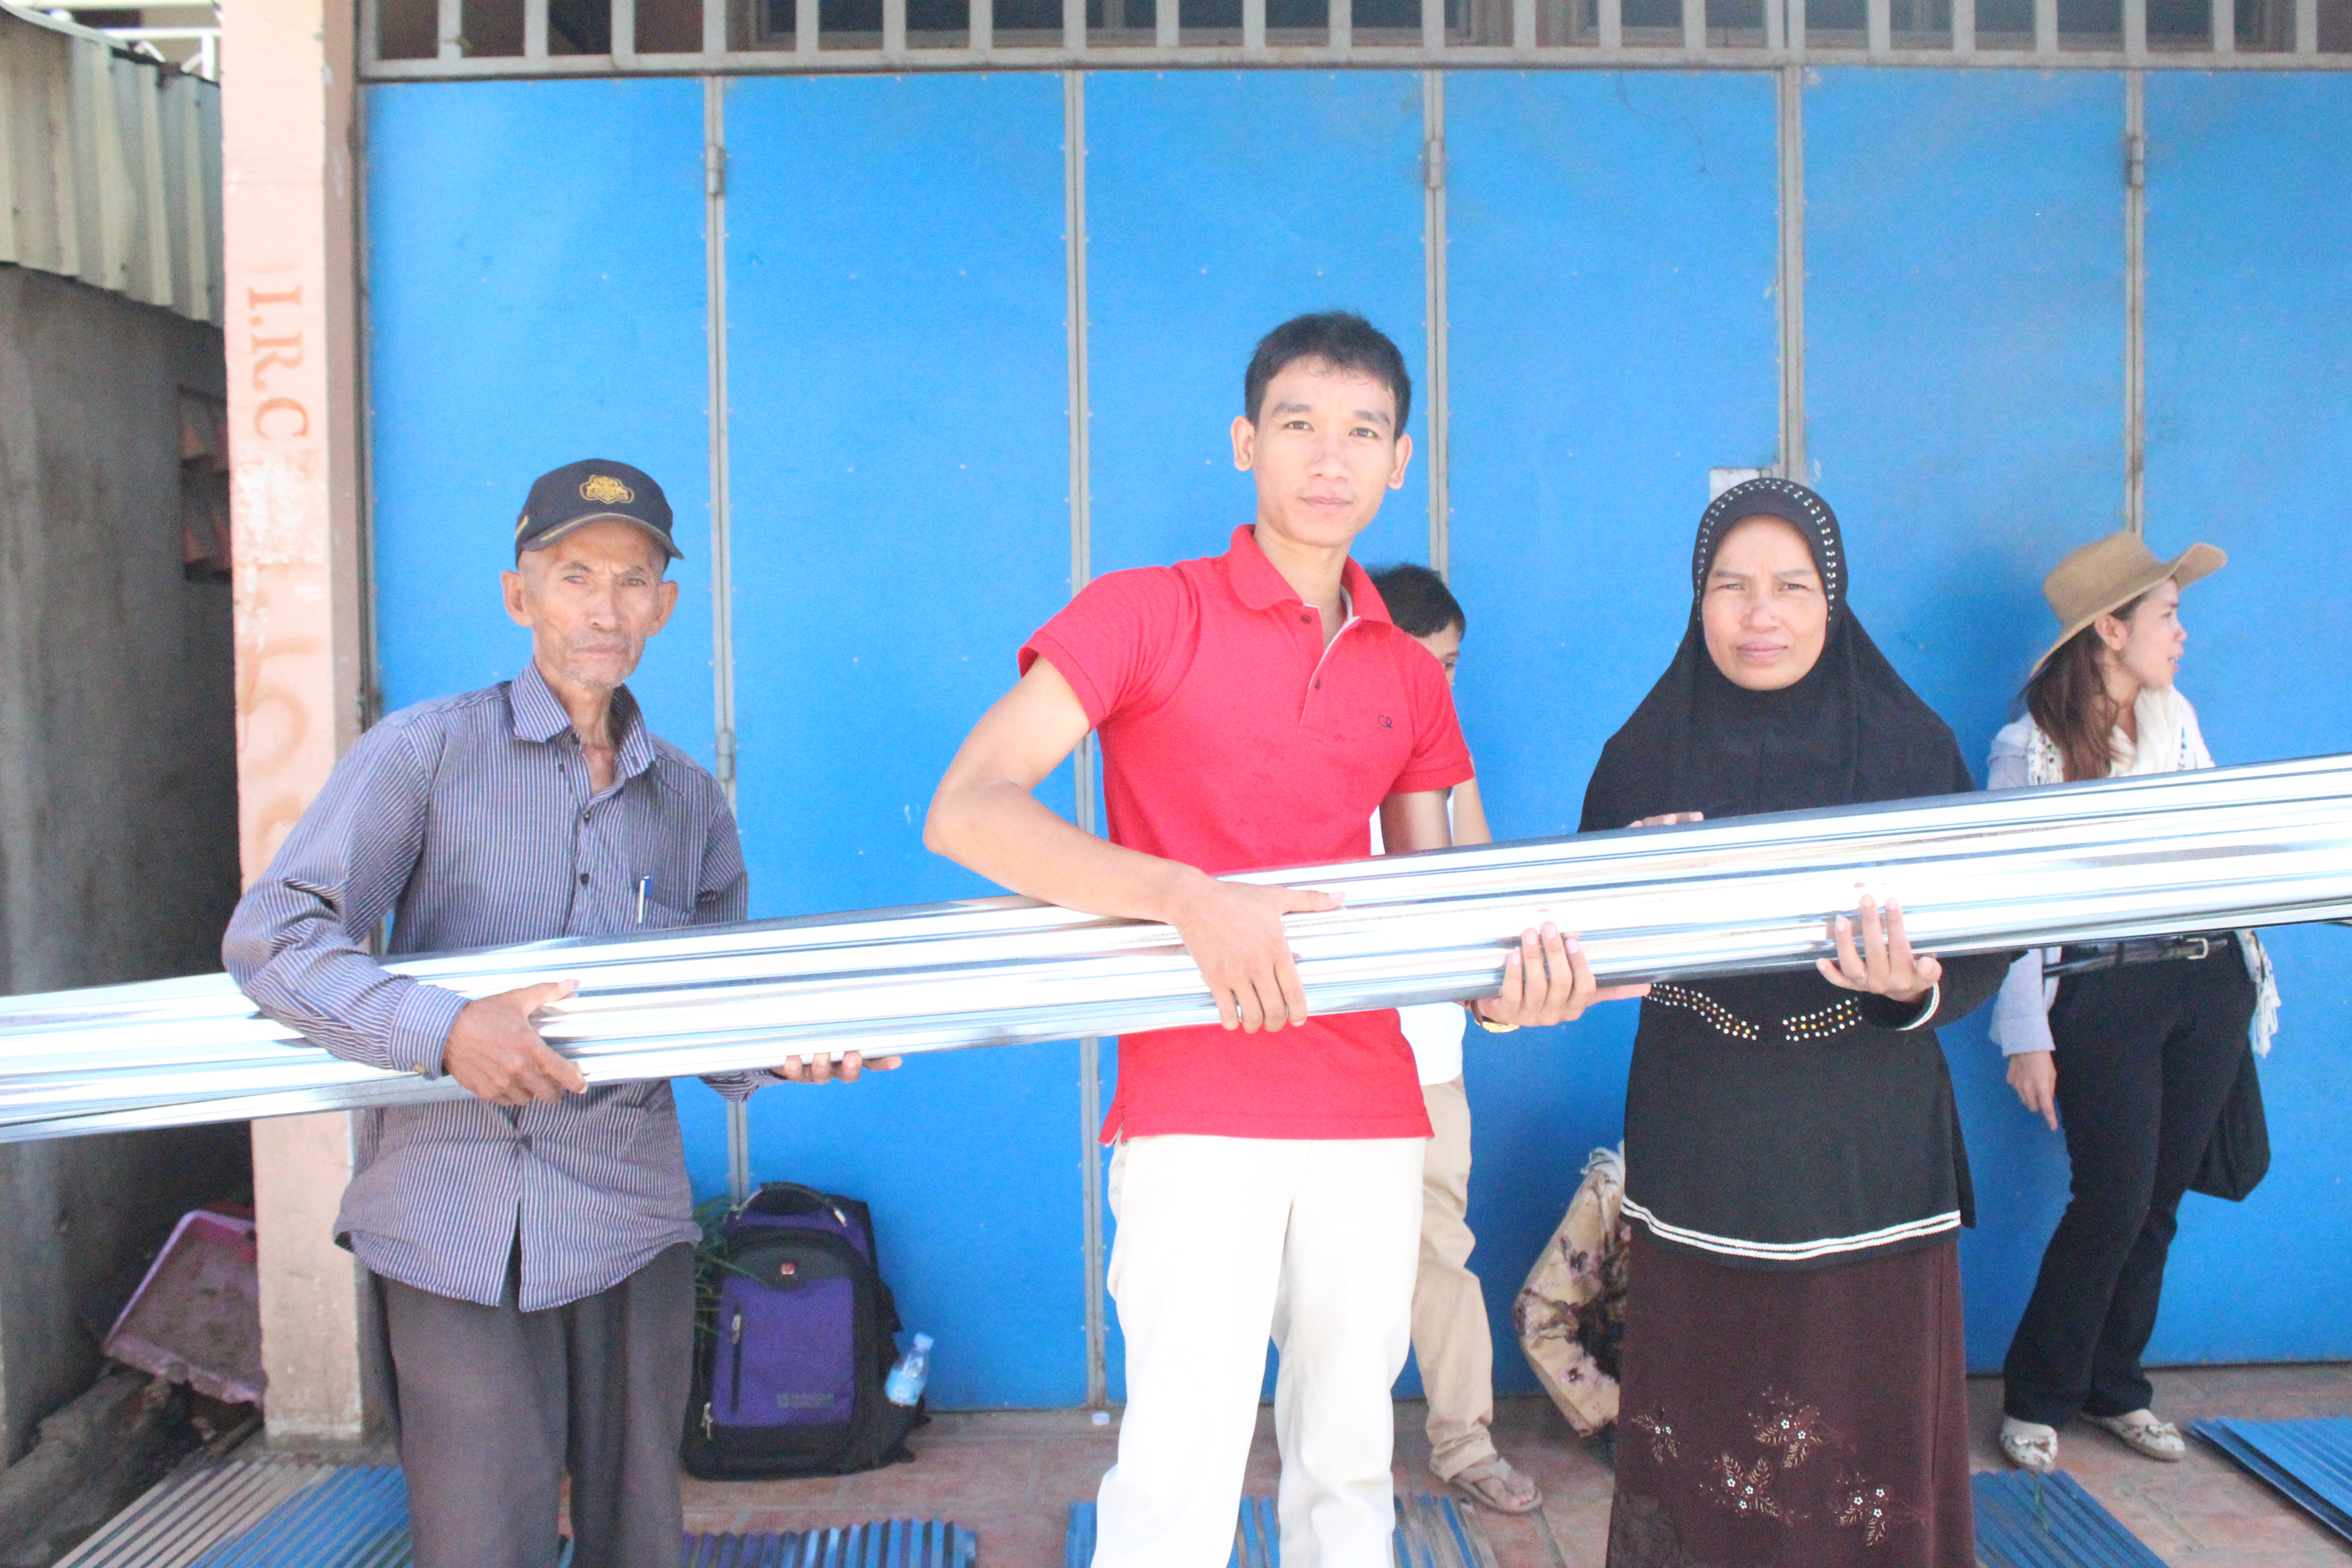 STT's staff distributed metal slates to the project's beneficiaries